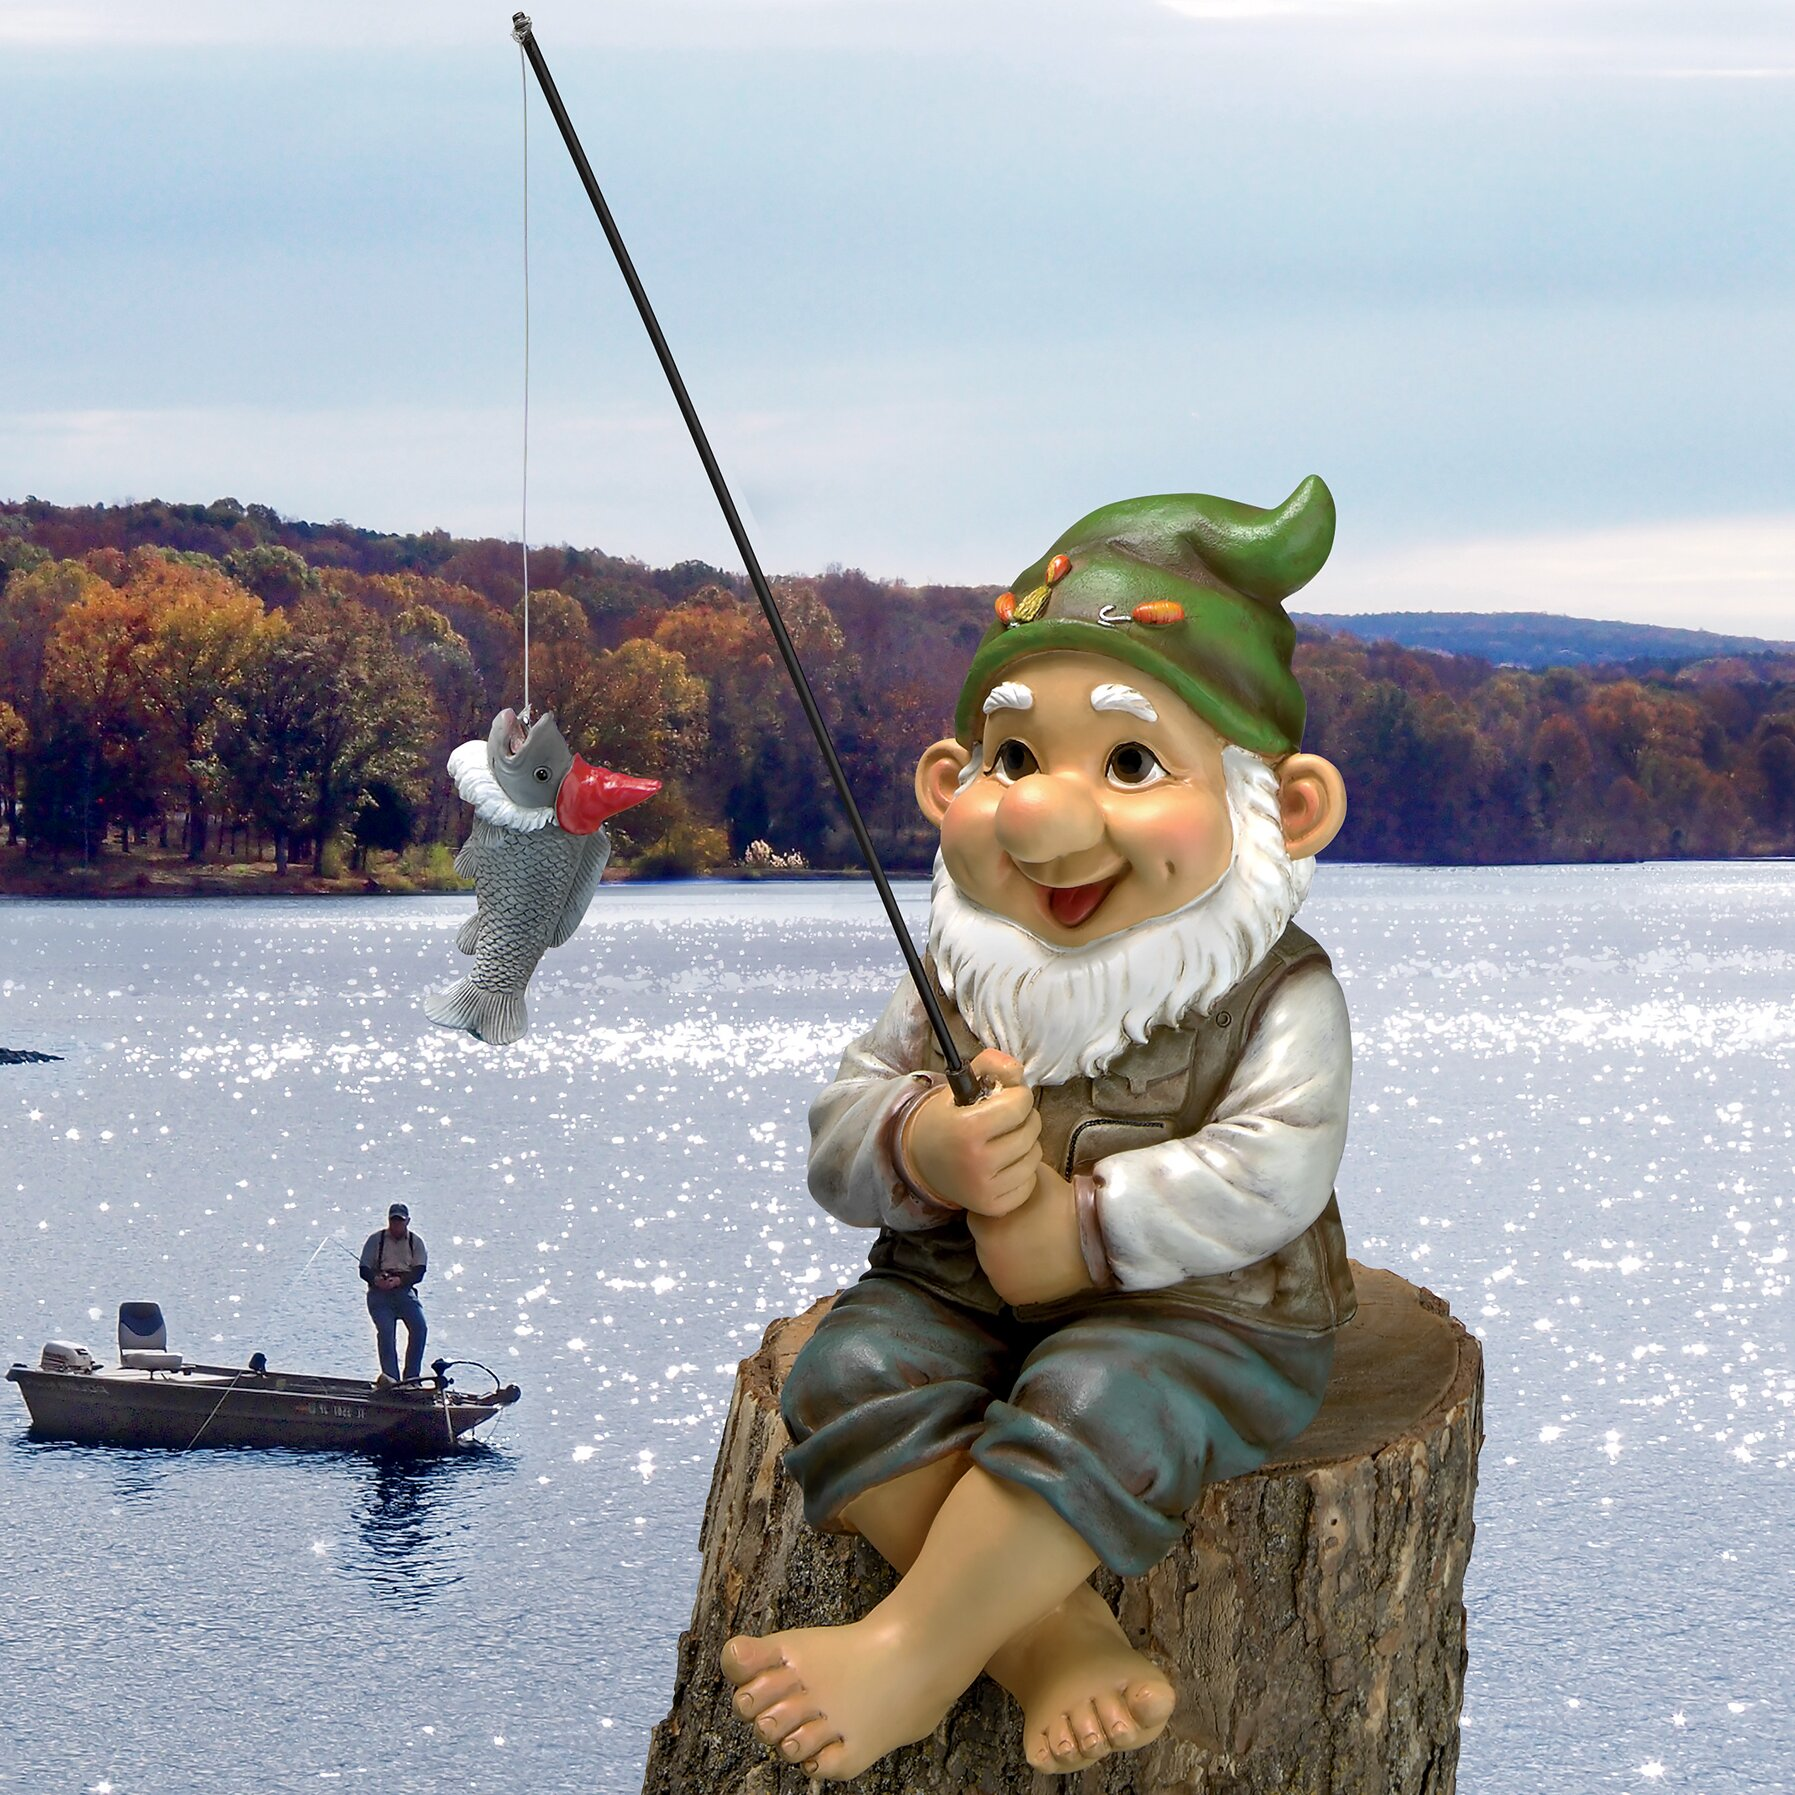 Design Toscano Ziggy the Fishing Gnome Garden Statue  : Design Toscano Ziggy the Fishing Gnome Garden Statue from www.wayfair.co.uk size 1795 x 1795 jpeg 874kB